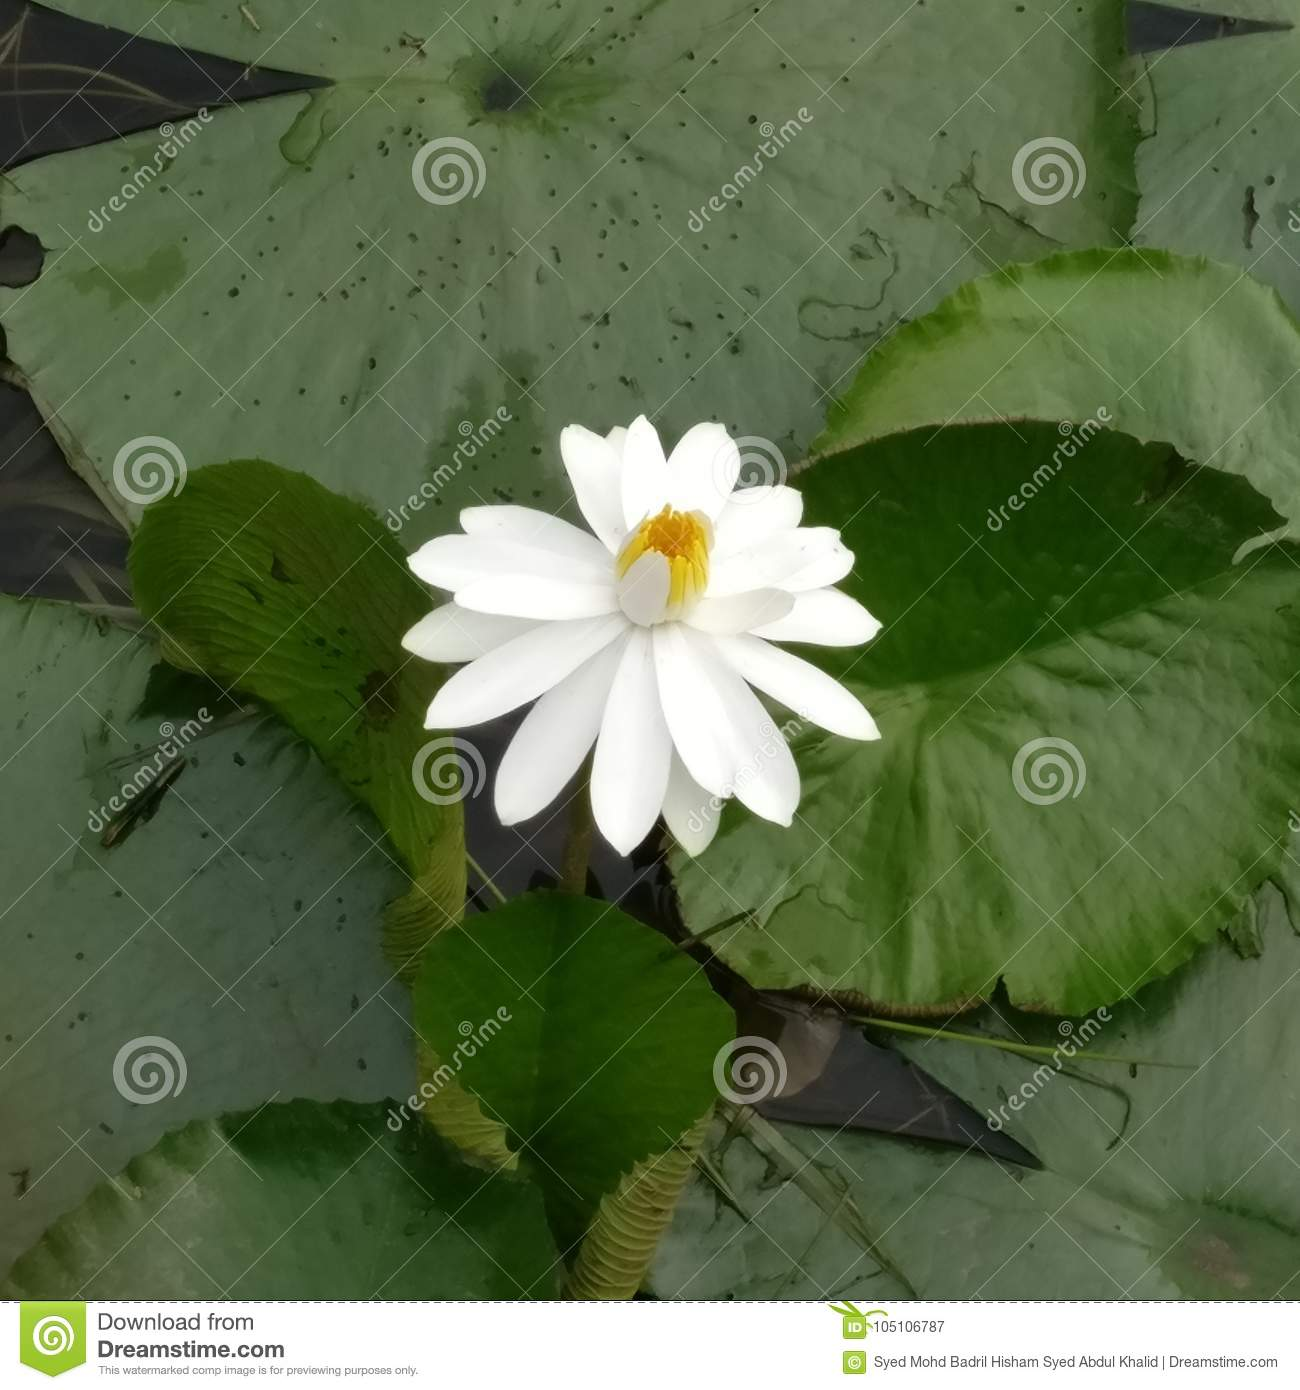 The Artificial Lotus Flower Stock Image Image Of Tourist Lily